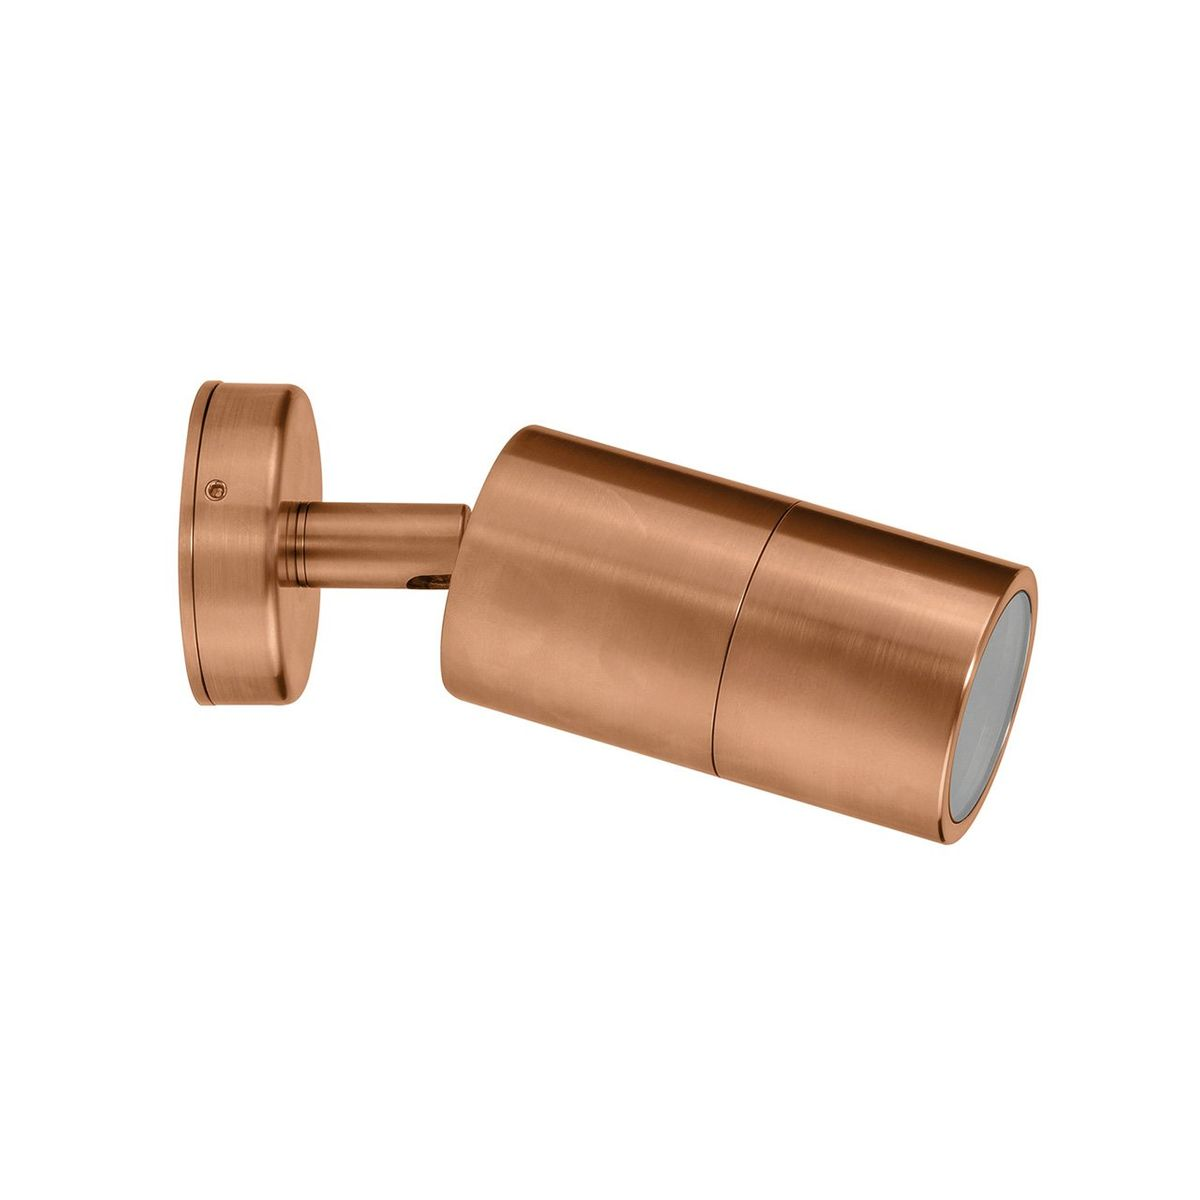 HV1215-HV1217 - Tivah Copper Single Adjustable Spot Lights – Bild 1